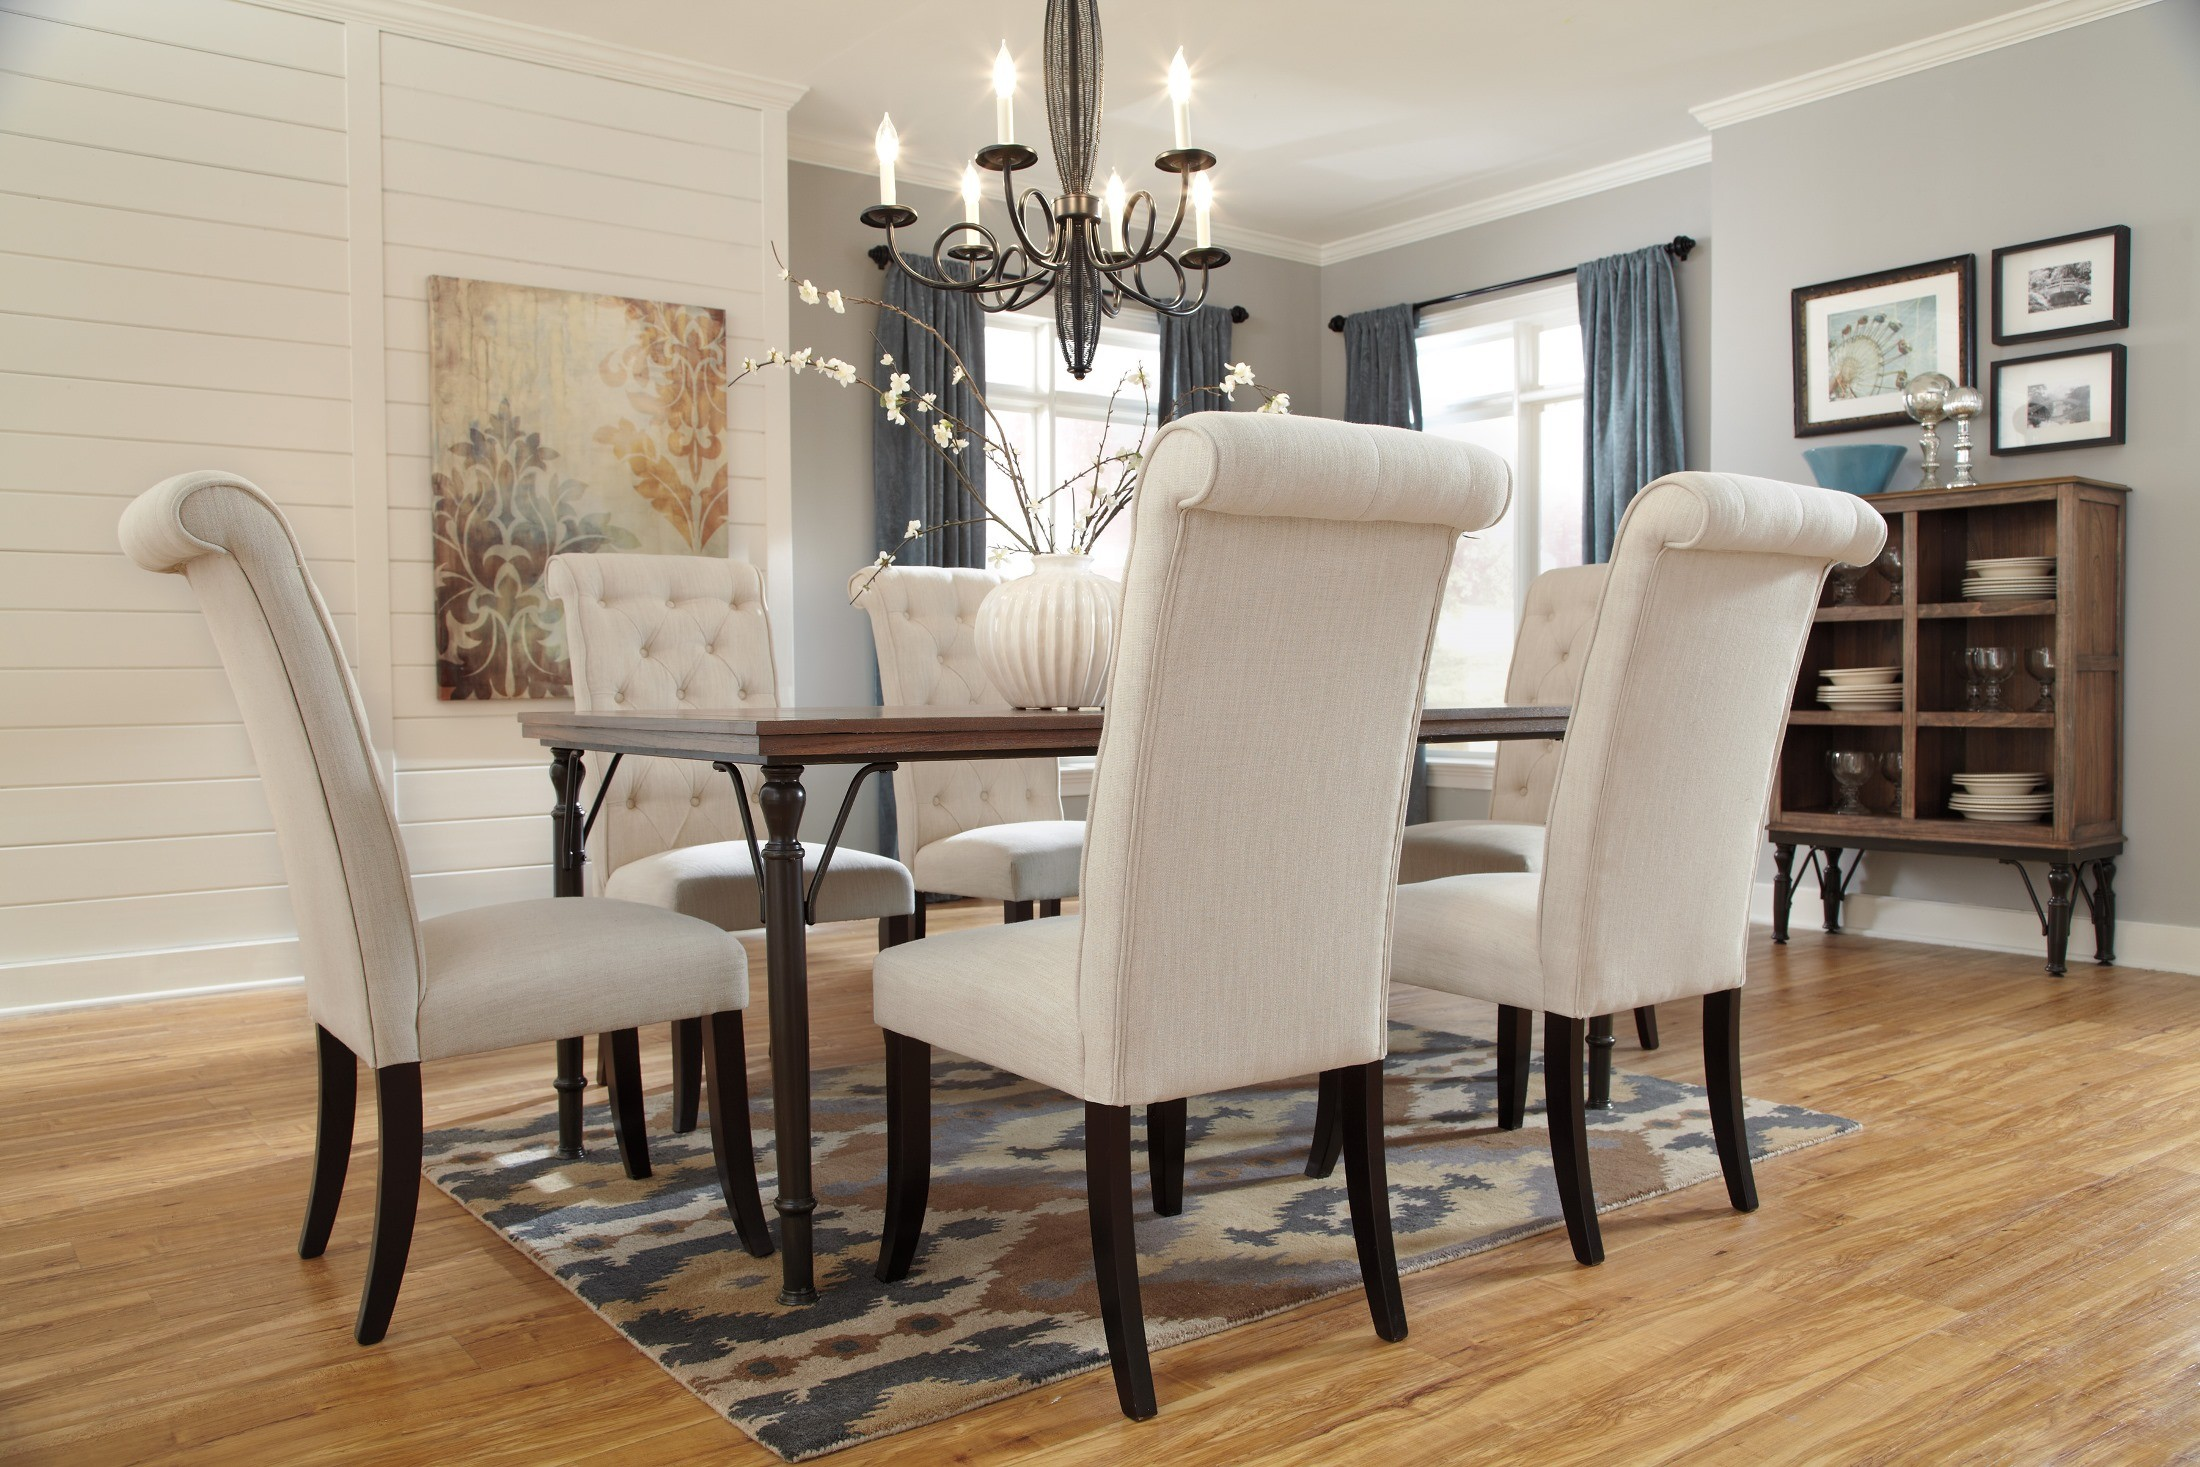 Tripton Dining Upholstered Side Chair Set of 2 from Ashley  : d530 25 mood b from colemanfurniture.com size 2200 x 1467 jpeg 654kB